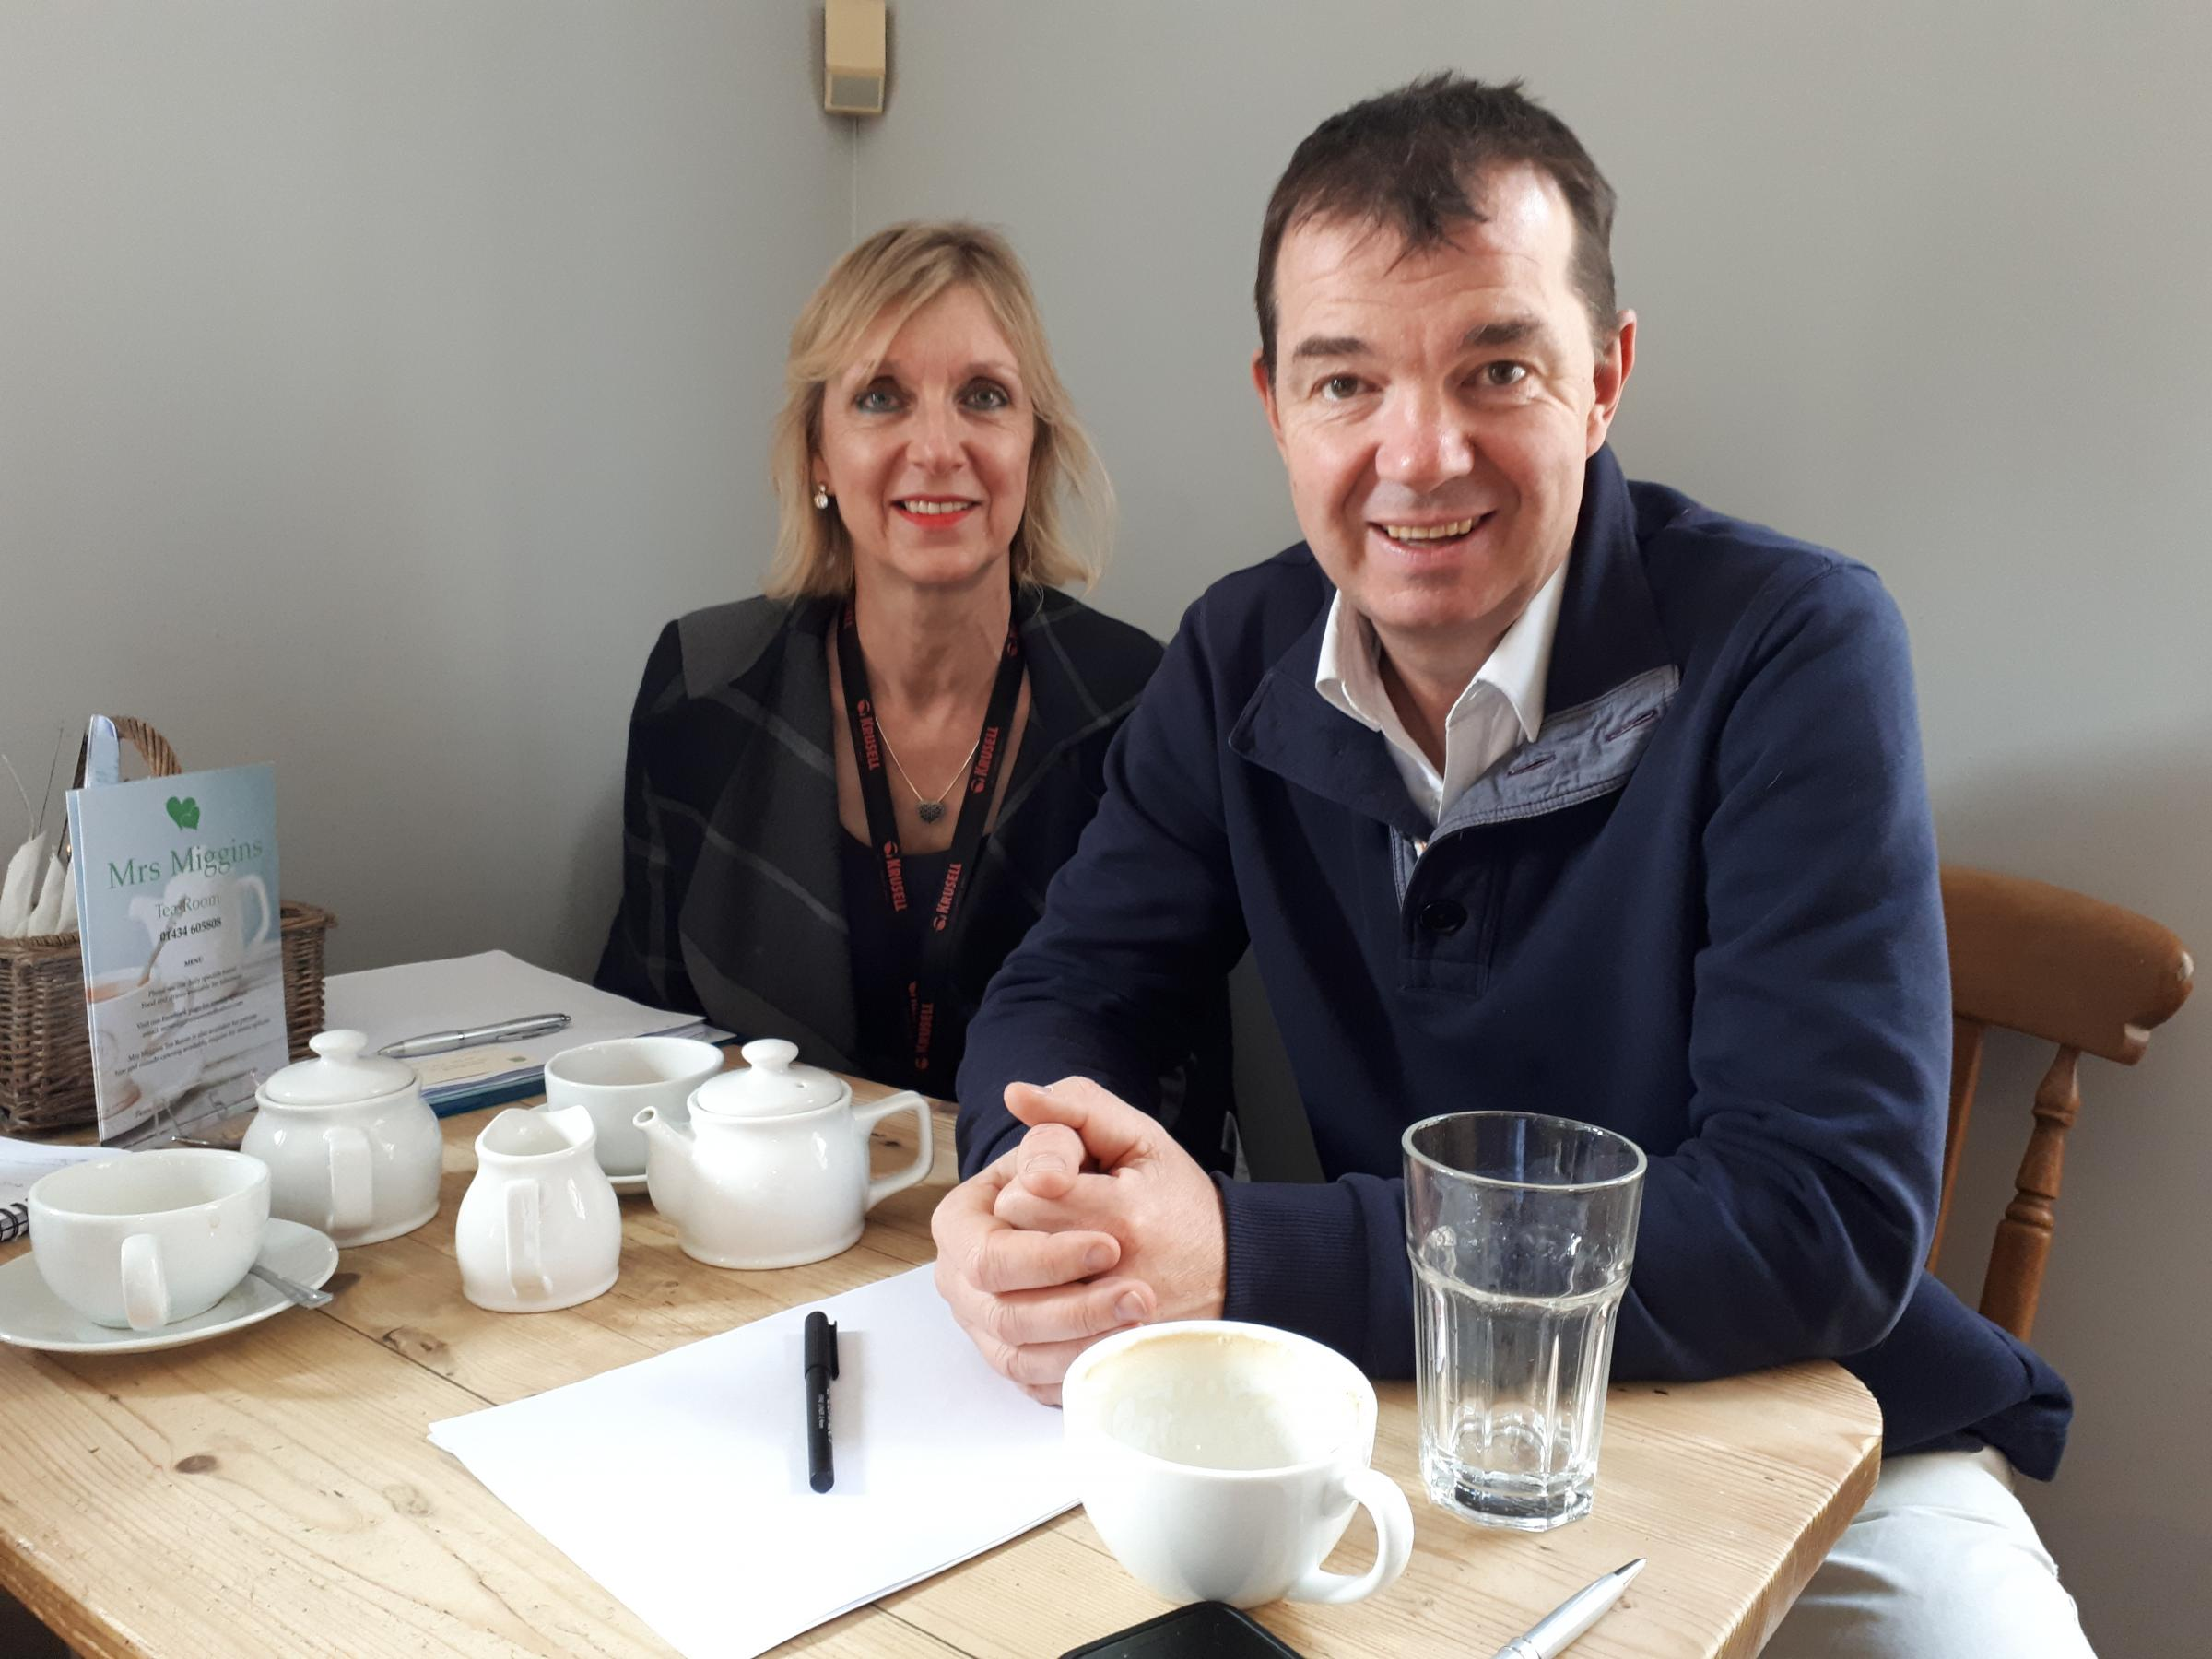 Hexham's MP Guy Opperman meets with Karen Bragg, the Post Office's area network change manager, in Hexham.